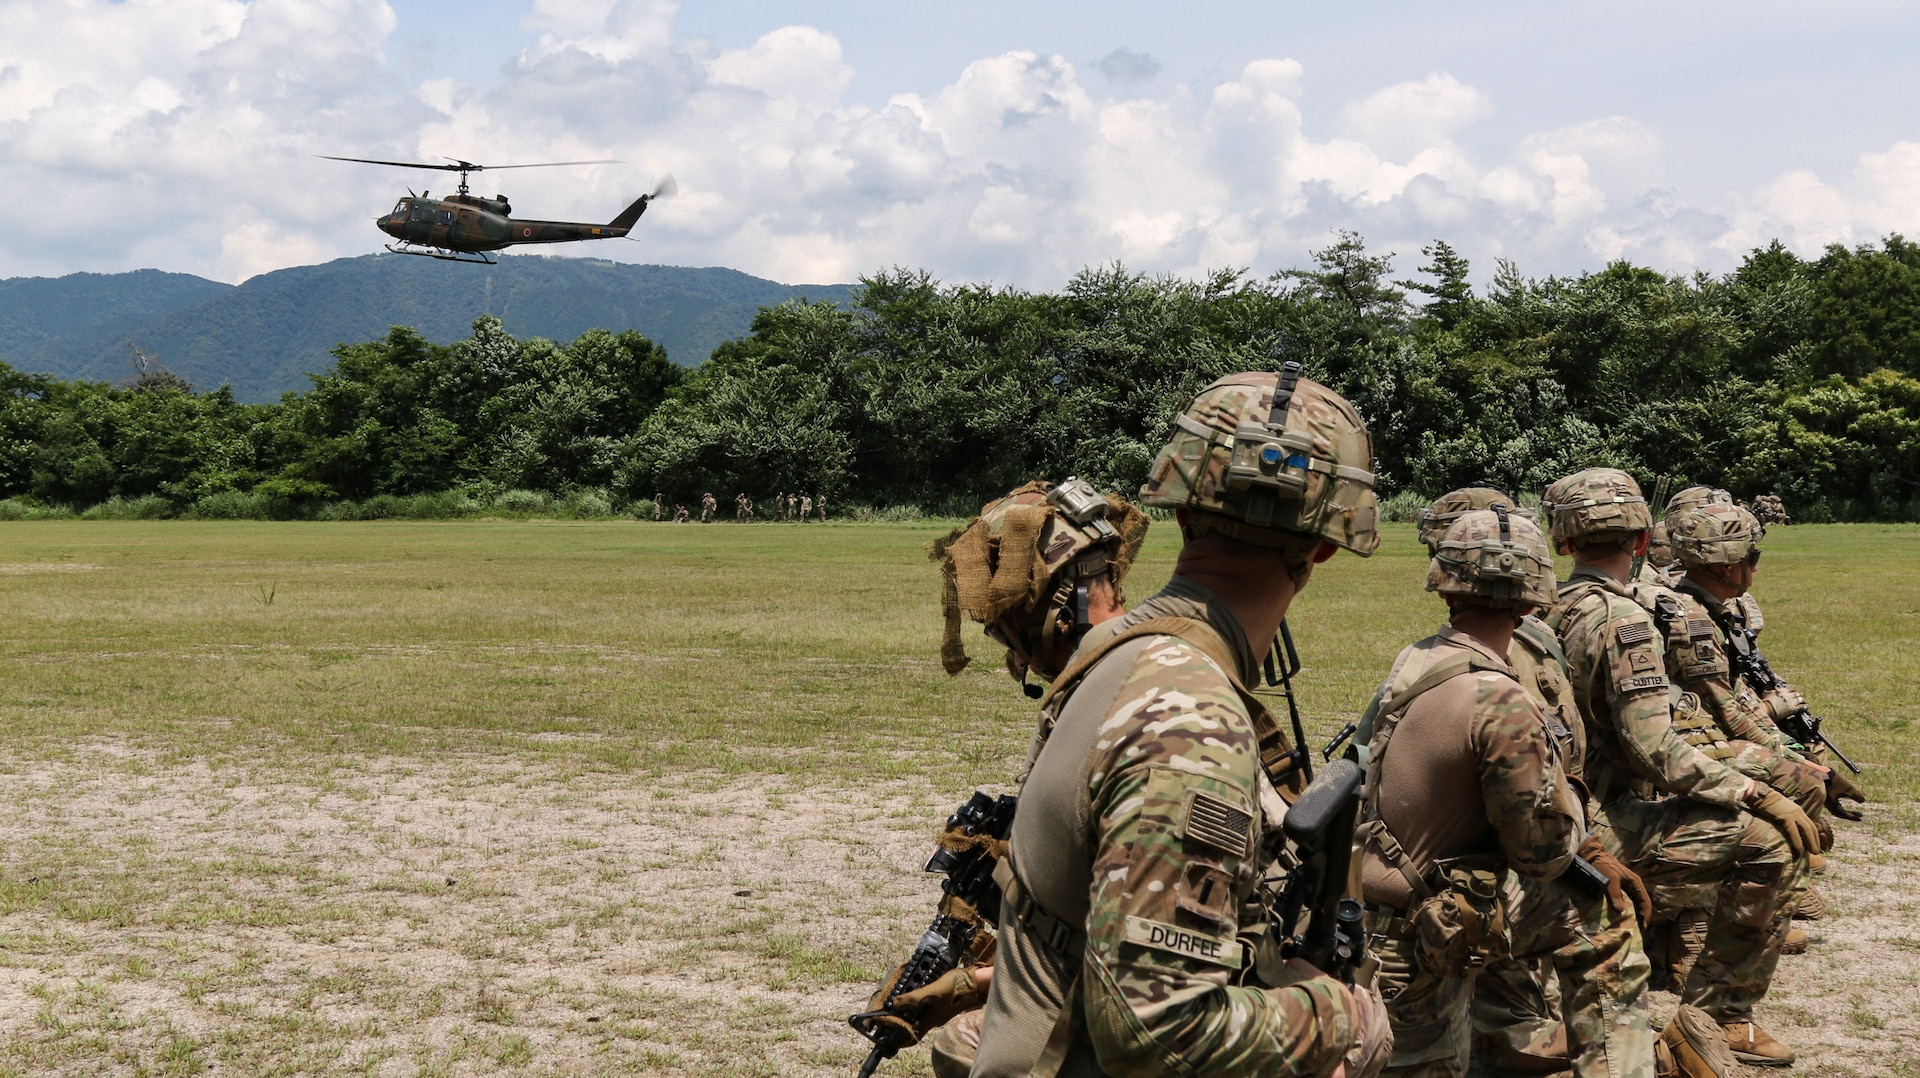 Orient Shield 21-2 train to conduct air assault operations